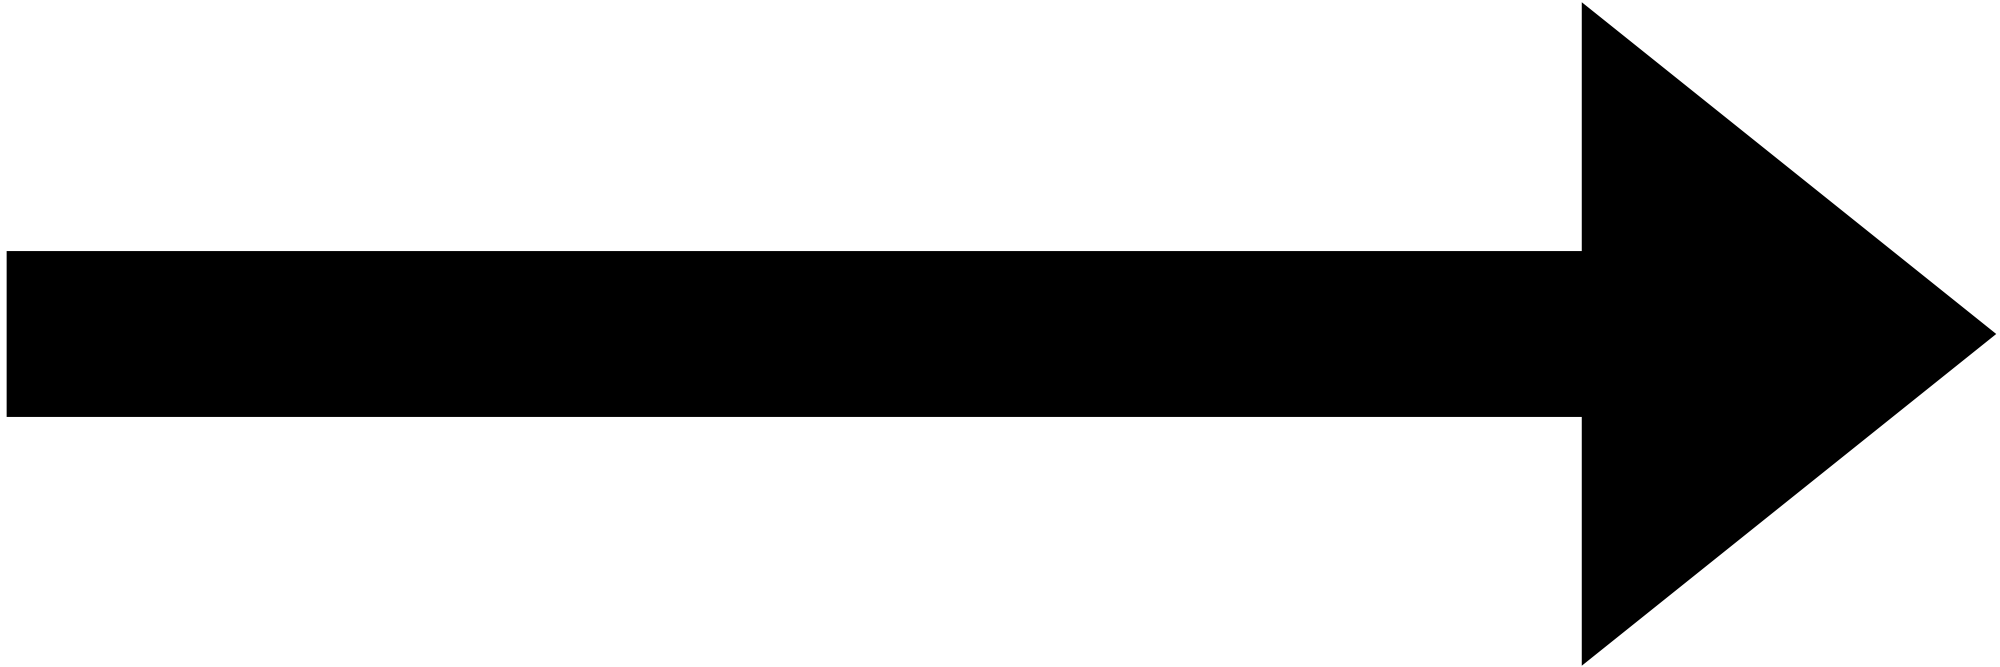 Black right arrow png. File svg wikimedia commons